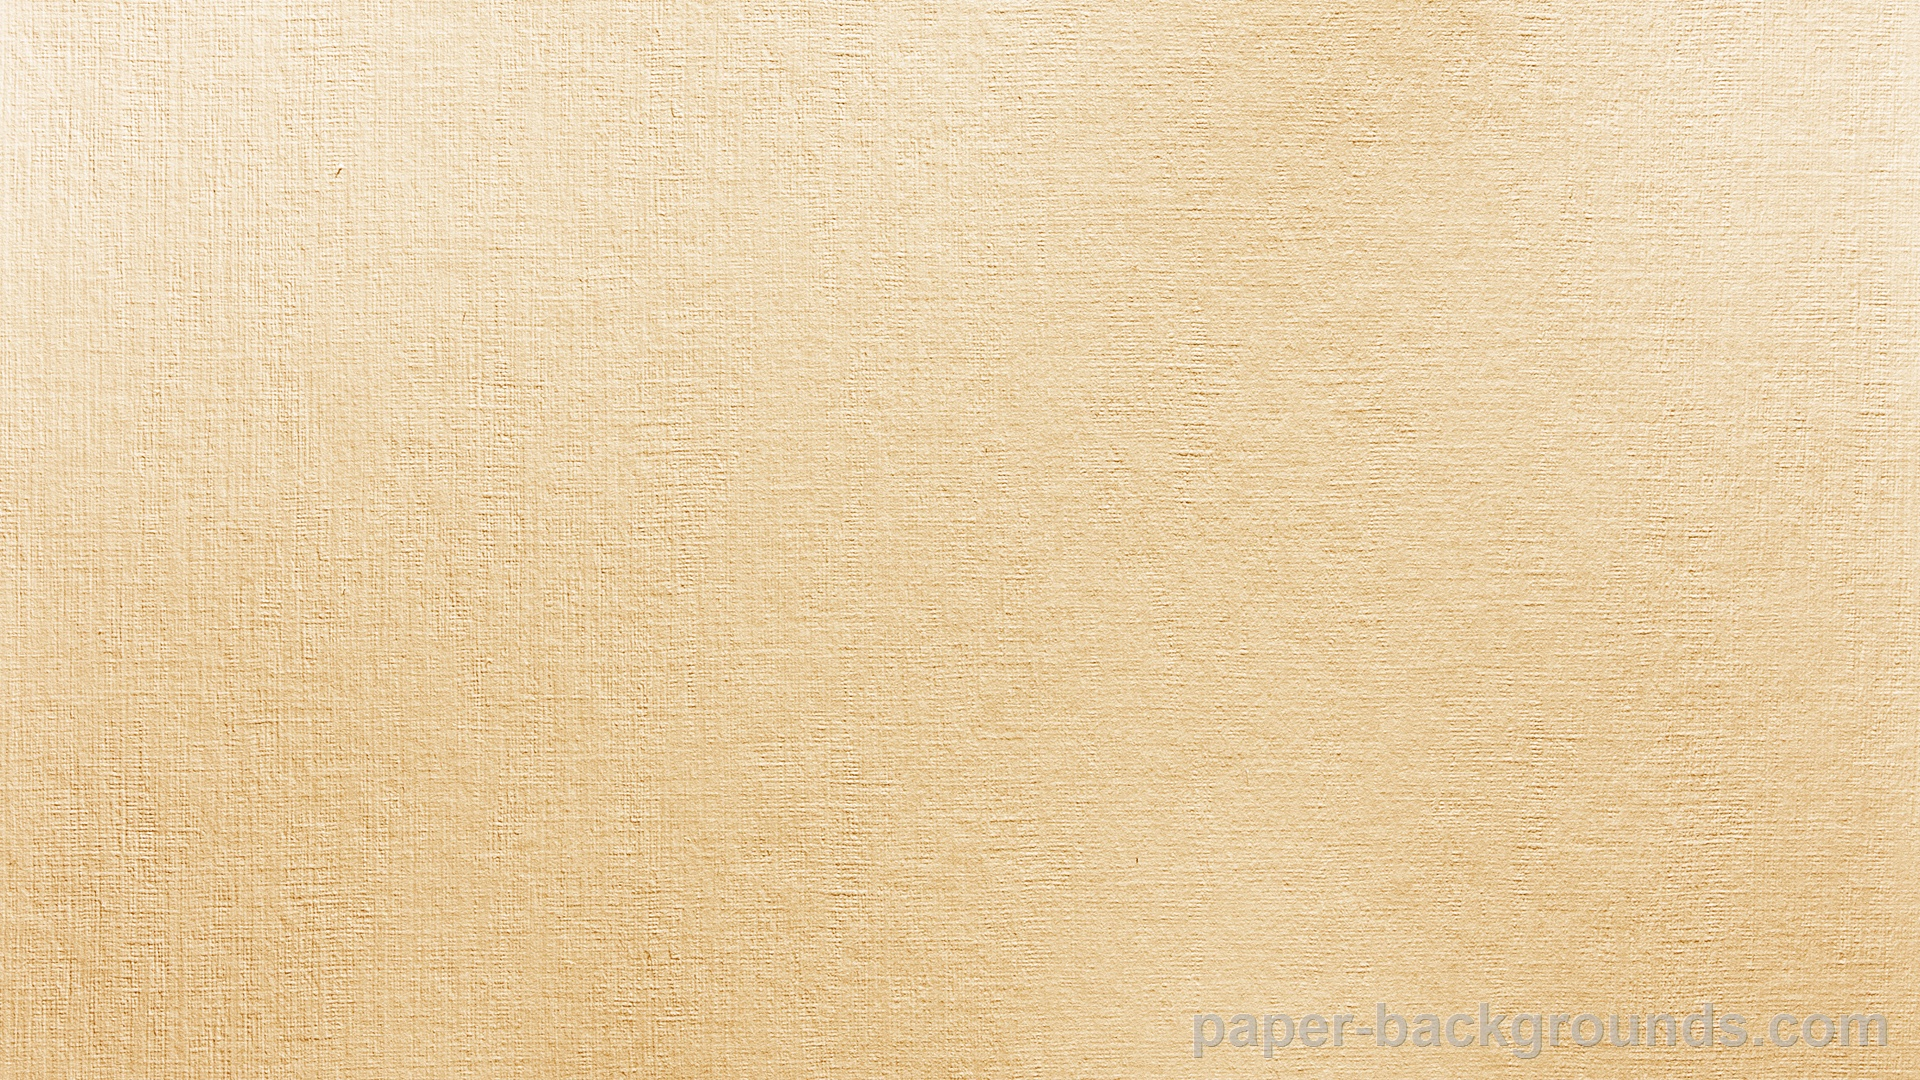 Paper Wallpaper - WallpaperSafari